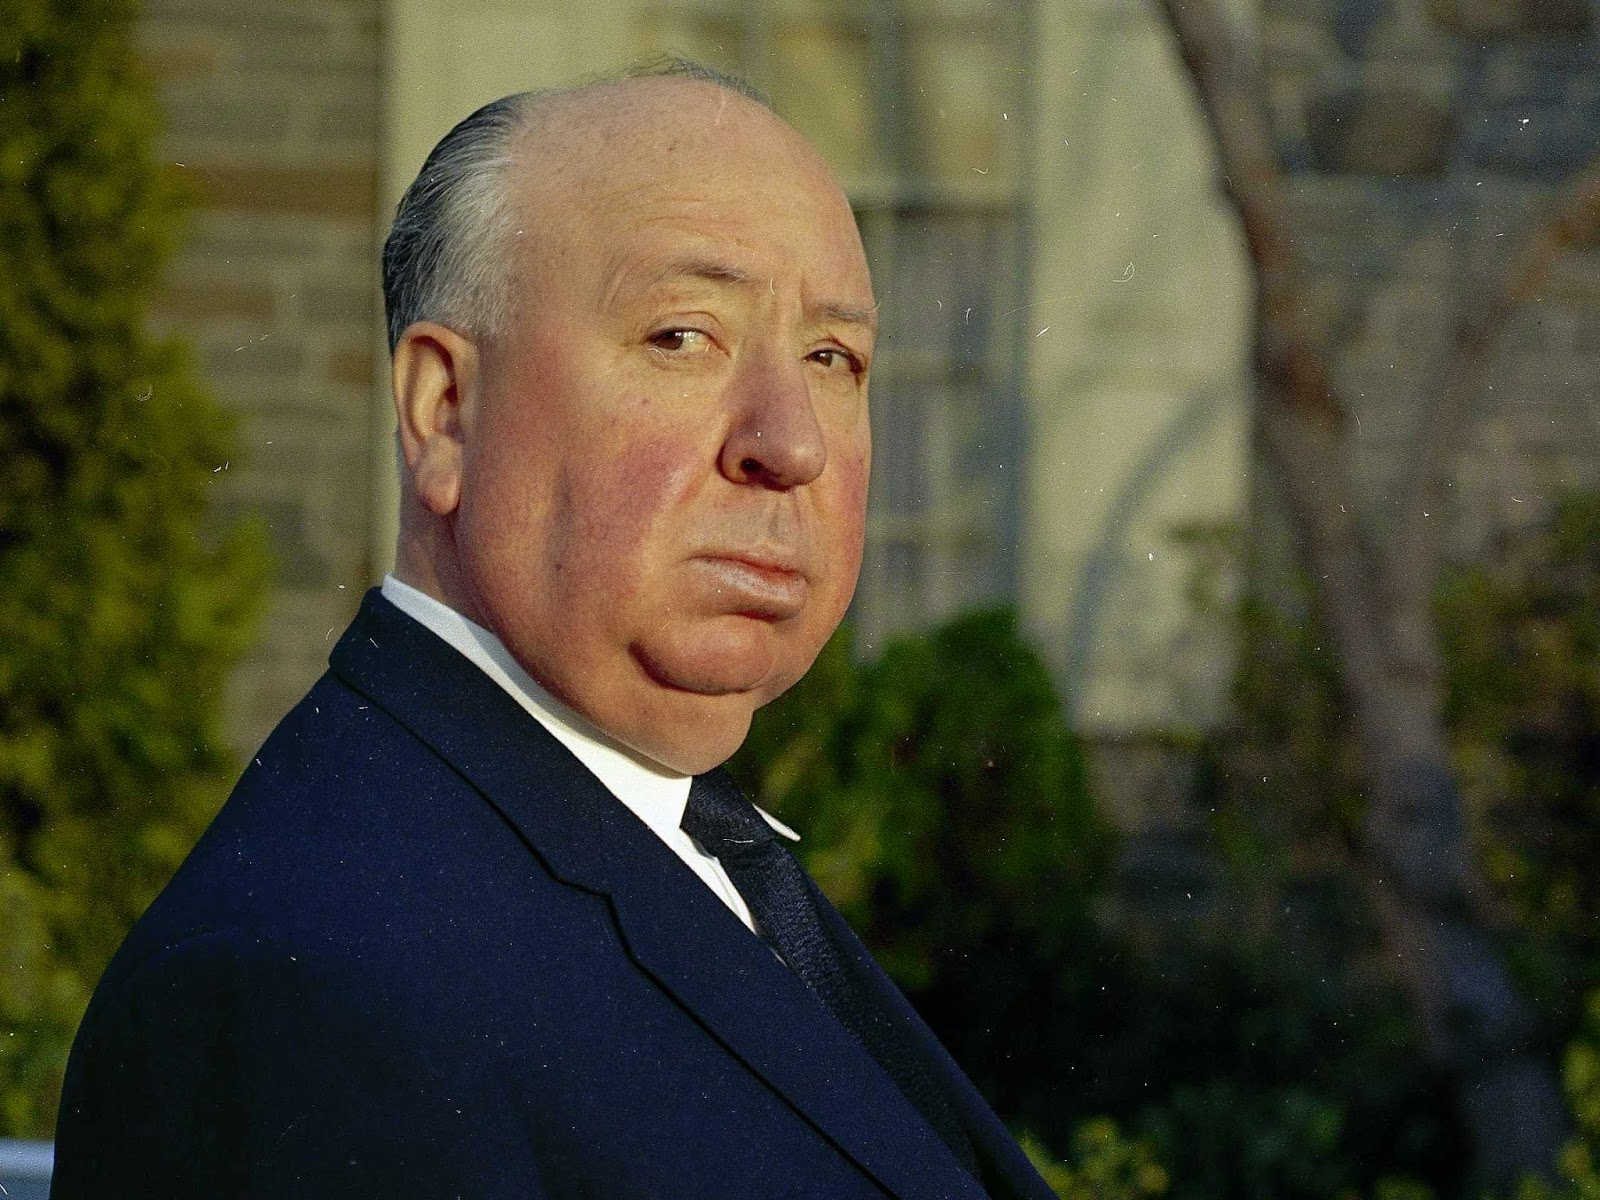 Alfred Hitchcock British Film Director, Producer